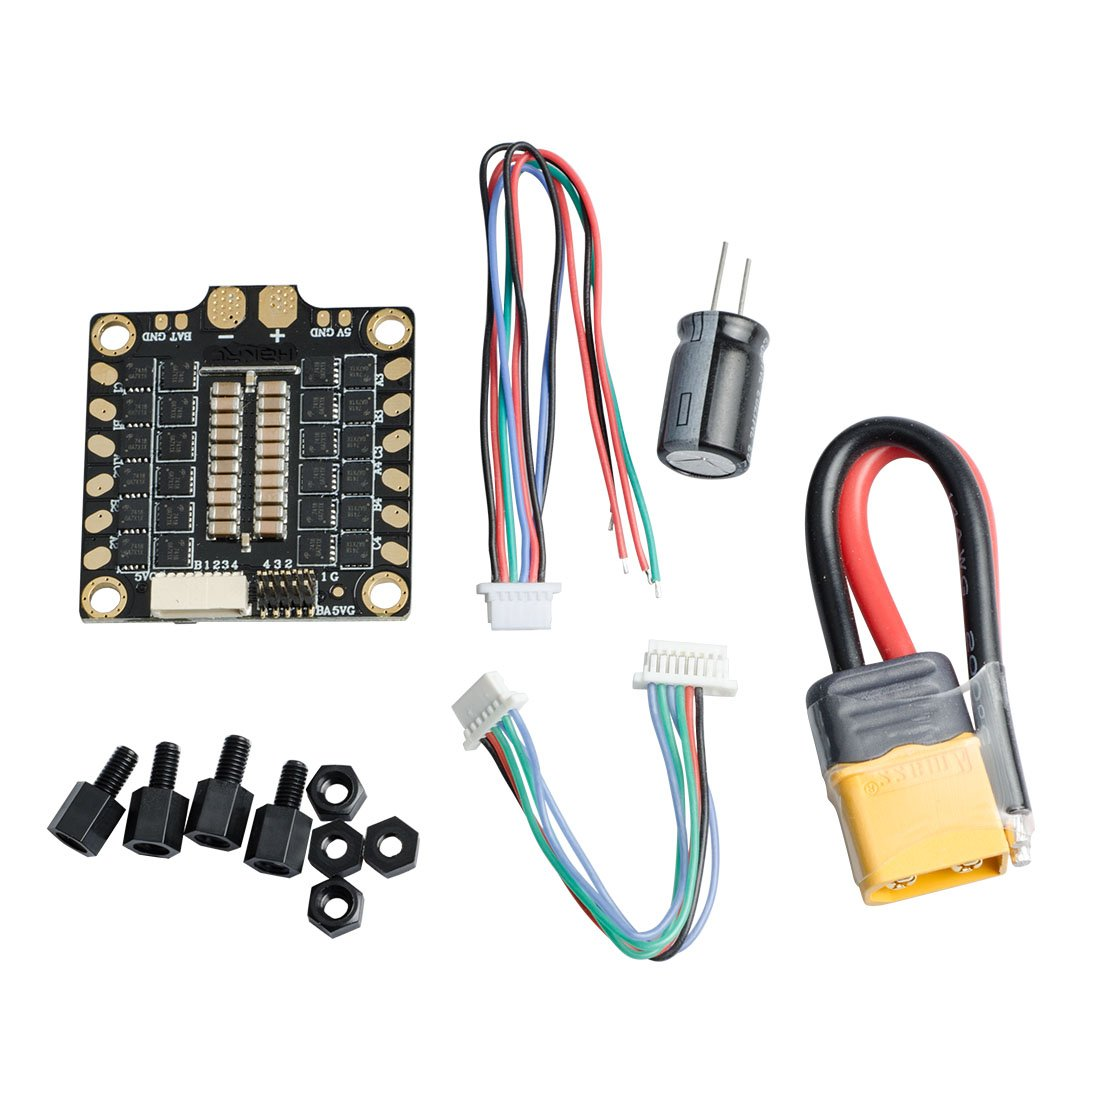 AKK 30A 4 IN 1 2-6S Brushless ESC BLHeli_S Electronic Speed Controller DShot150/300/600 Capable for Micro Racing Drones